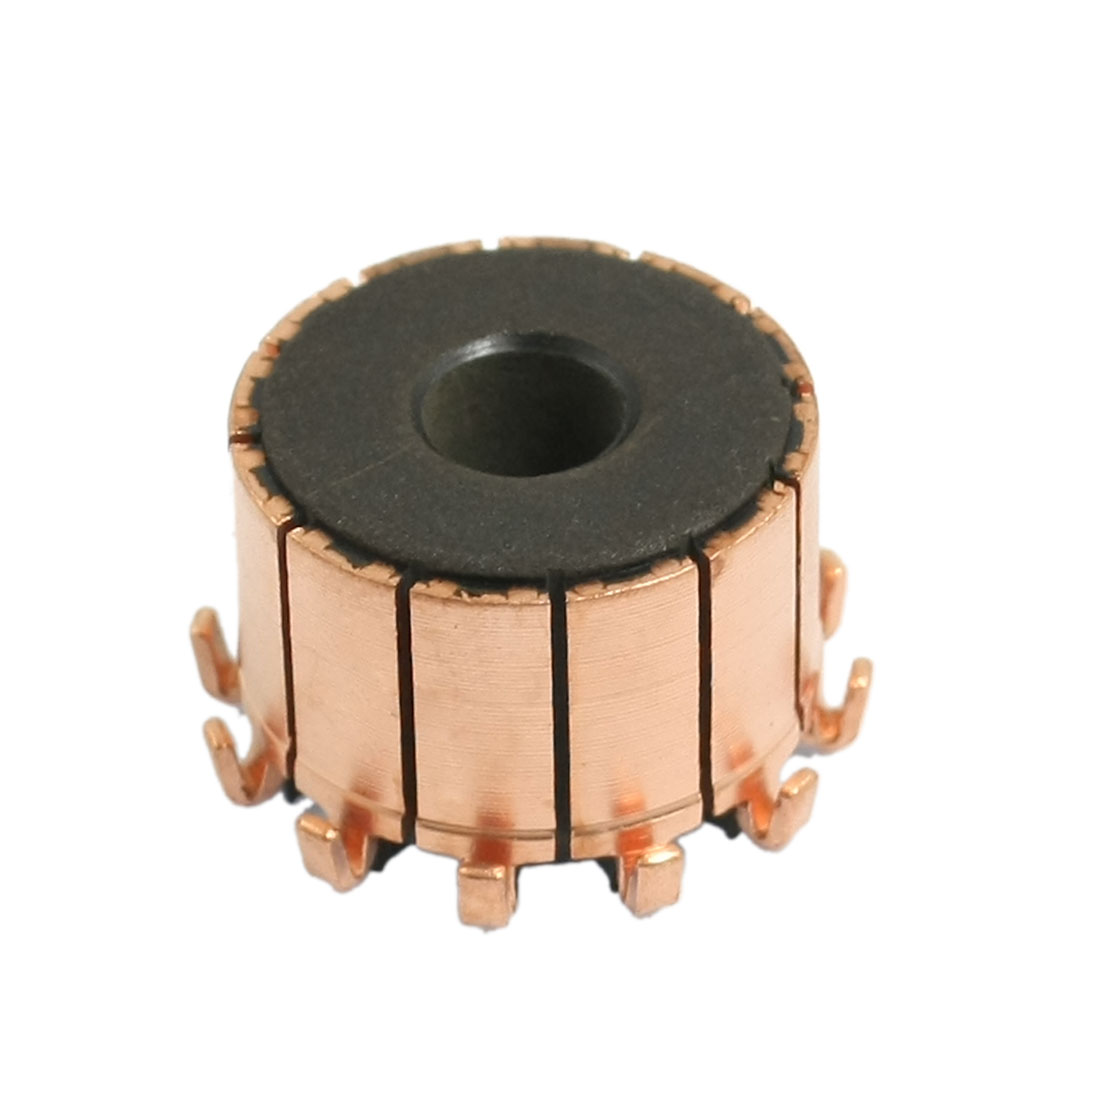 6.35mm x 18.9mm x 13.5mm 12 Gear Tooth Copper Shell Mounted On Armature Commutator